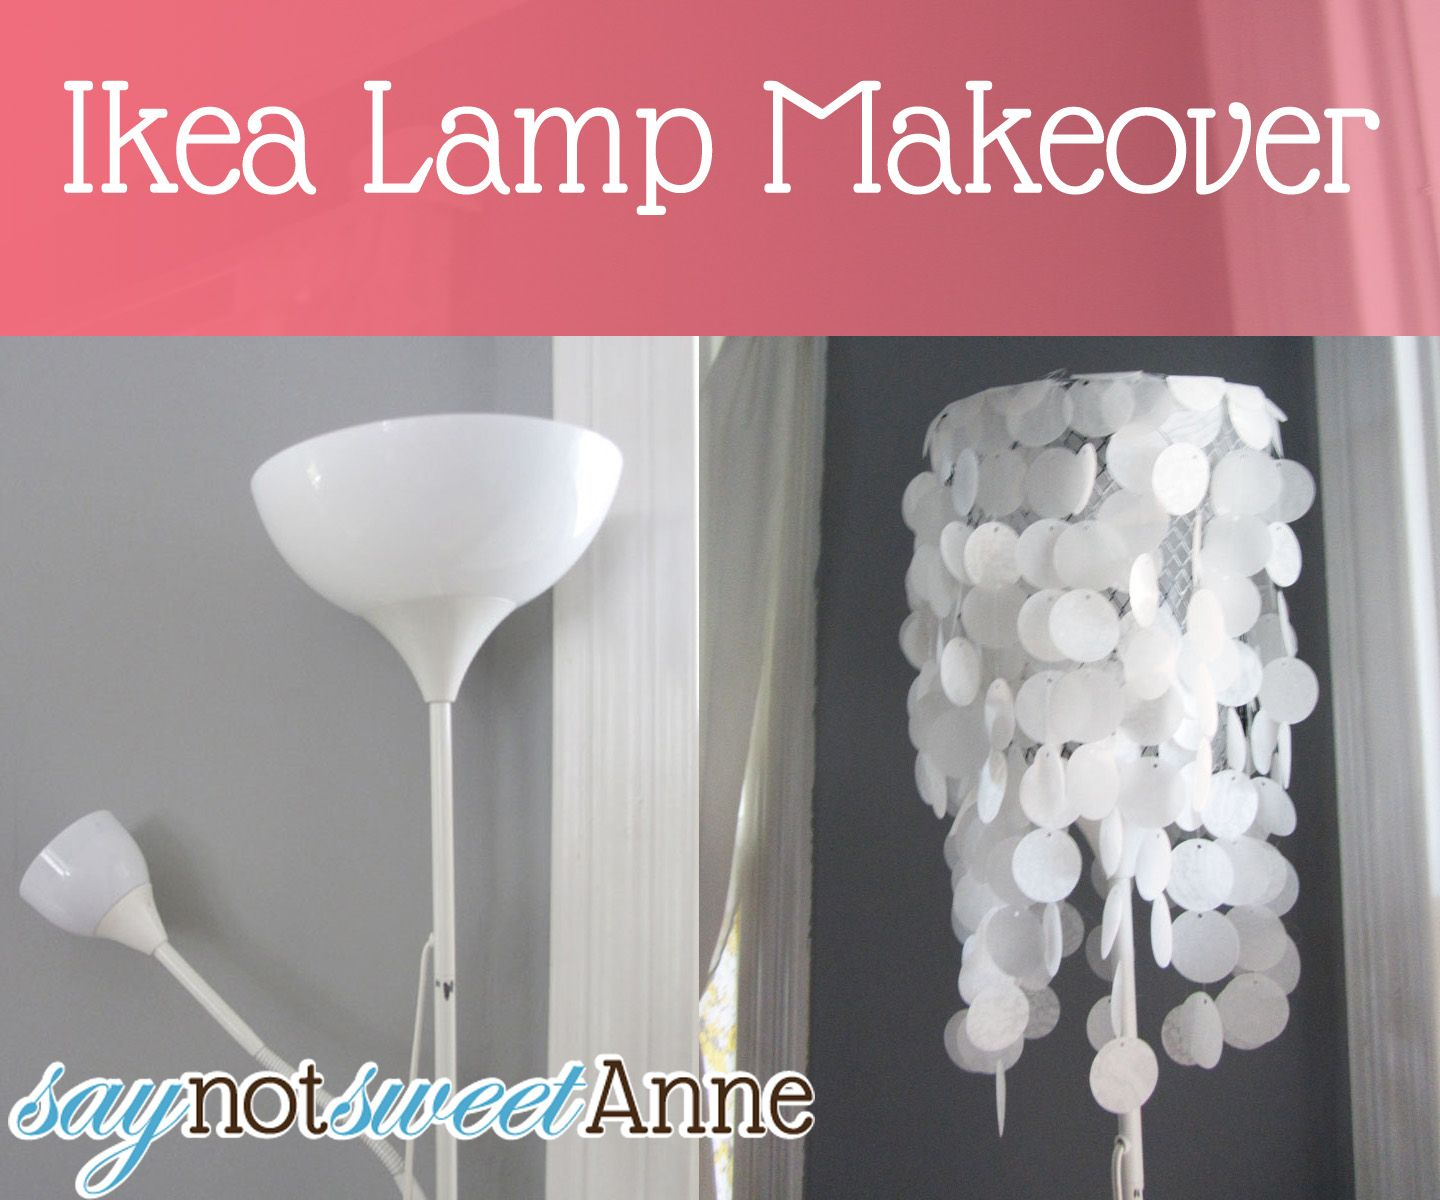 Ikea Lamp Makeover Sweet Anne Designs Ikea Lamp Lamp Makeover Floor Lamp Makeover